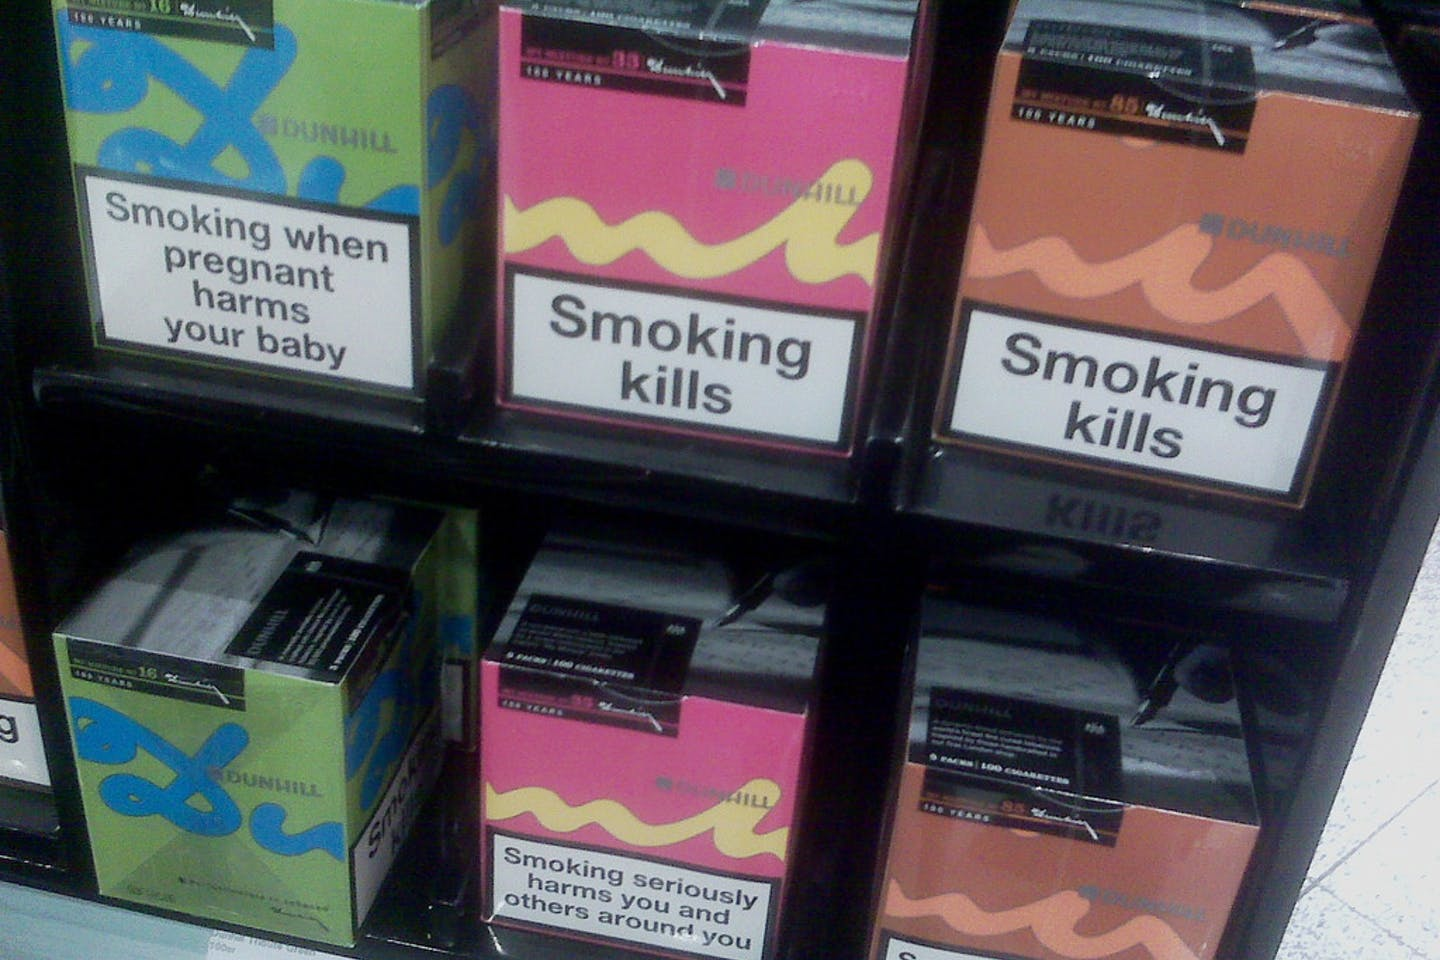 Health warnings on cigarette packets